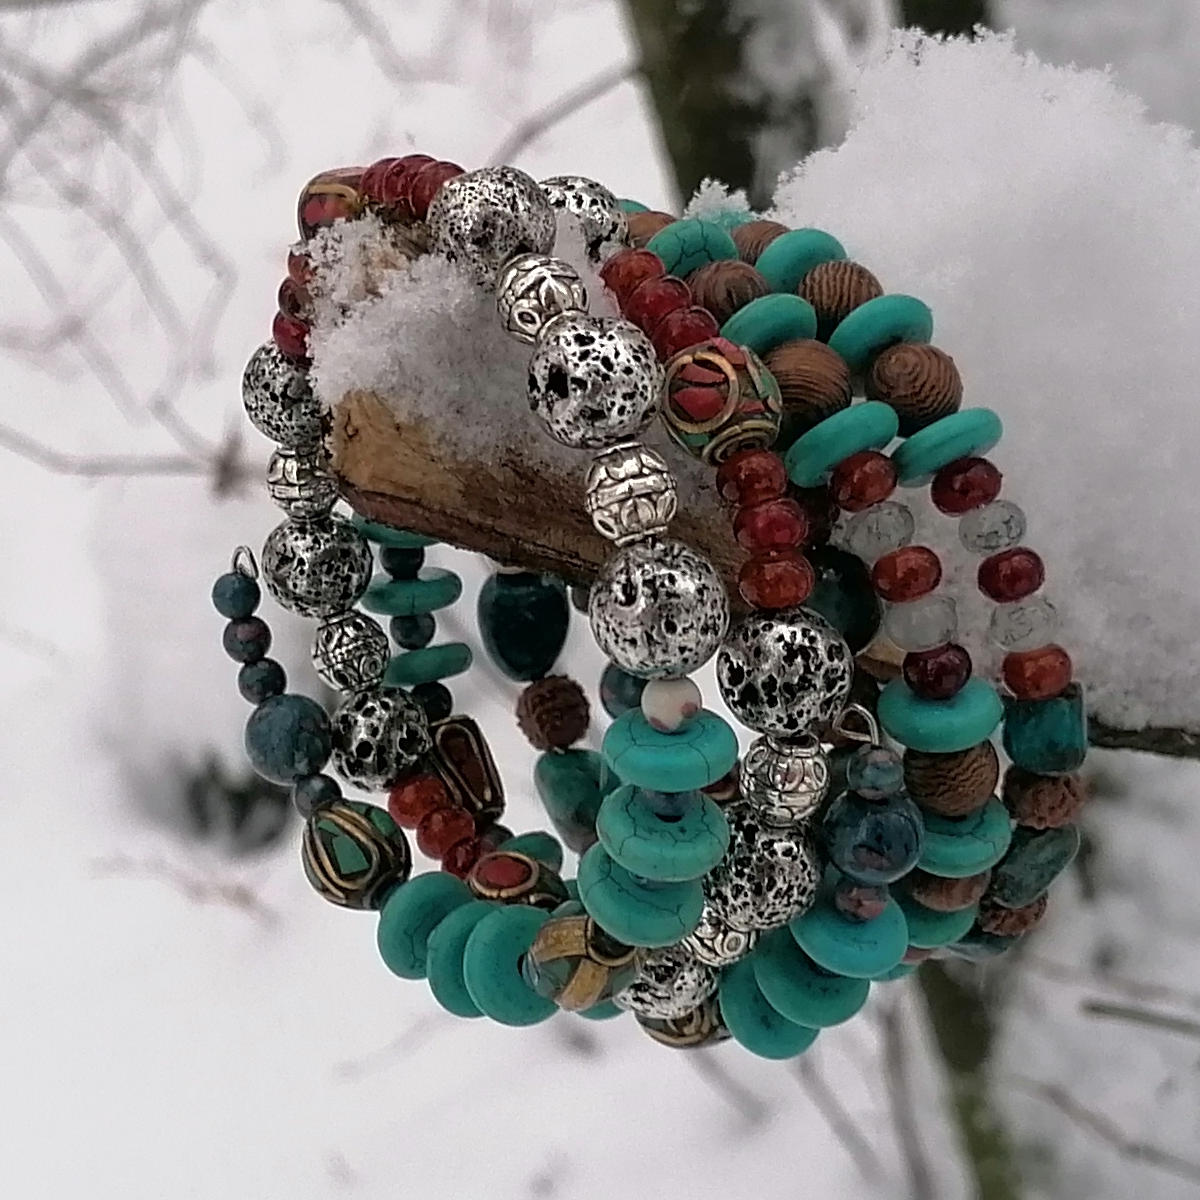 Jewellery and snowy forest